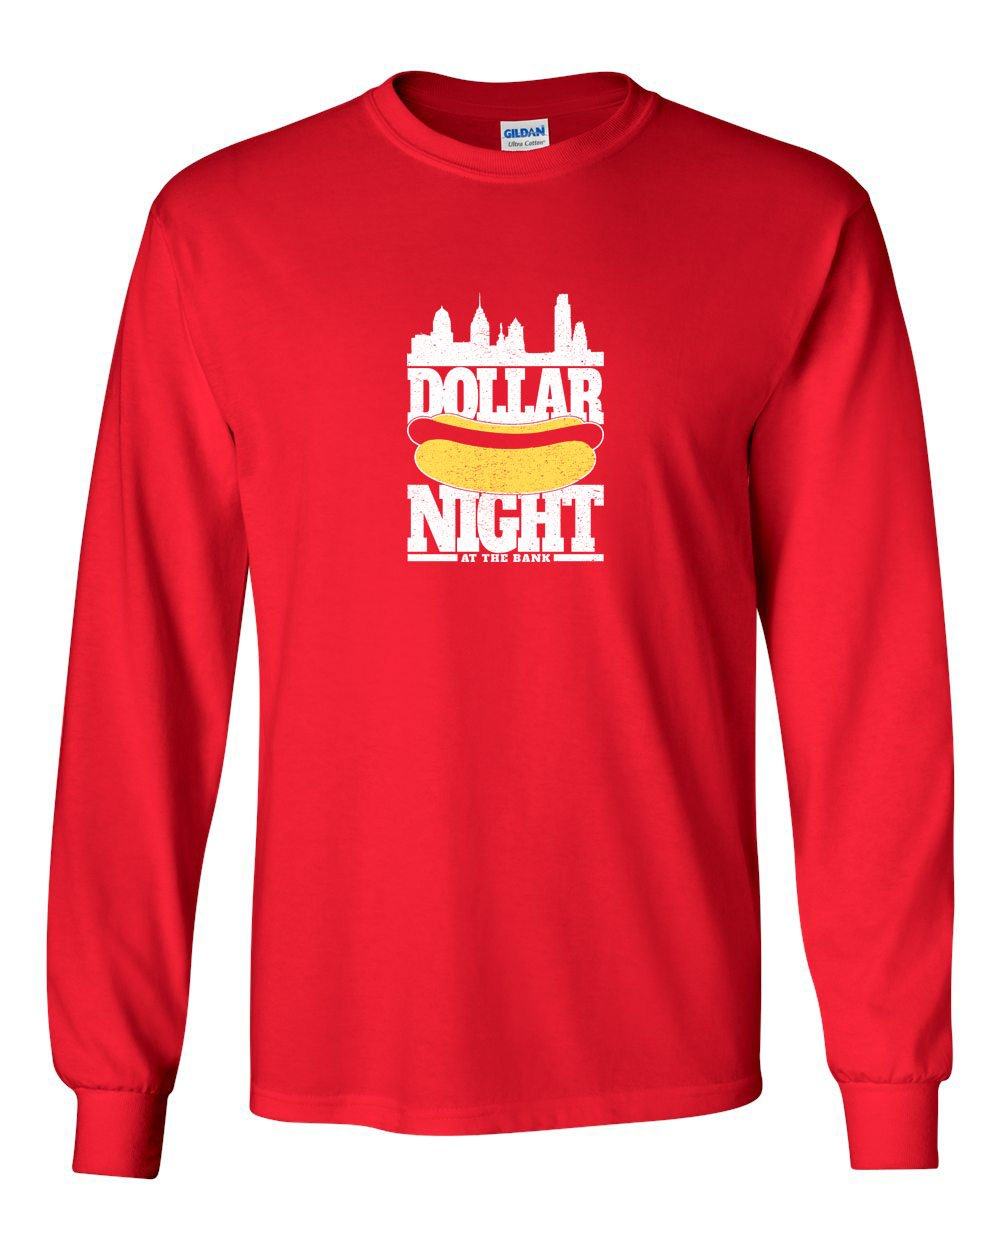 Dollar Dog Night MENS Long Sleeve Heavy Cotton T-Shirt